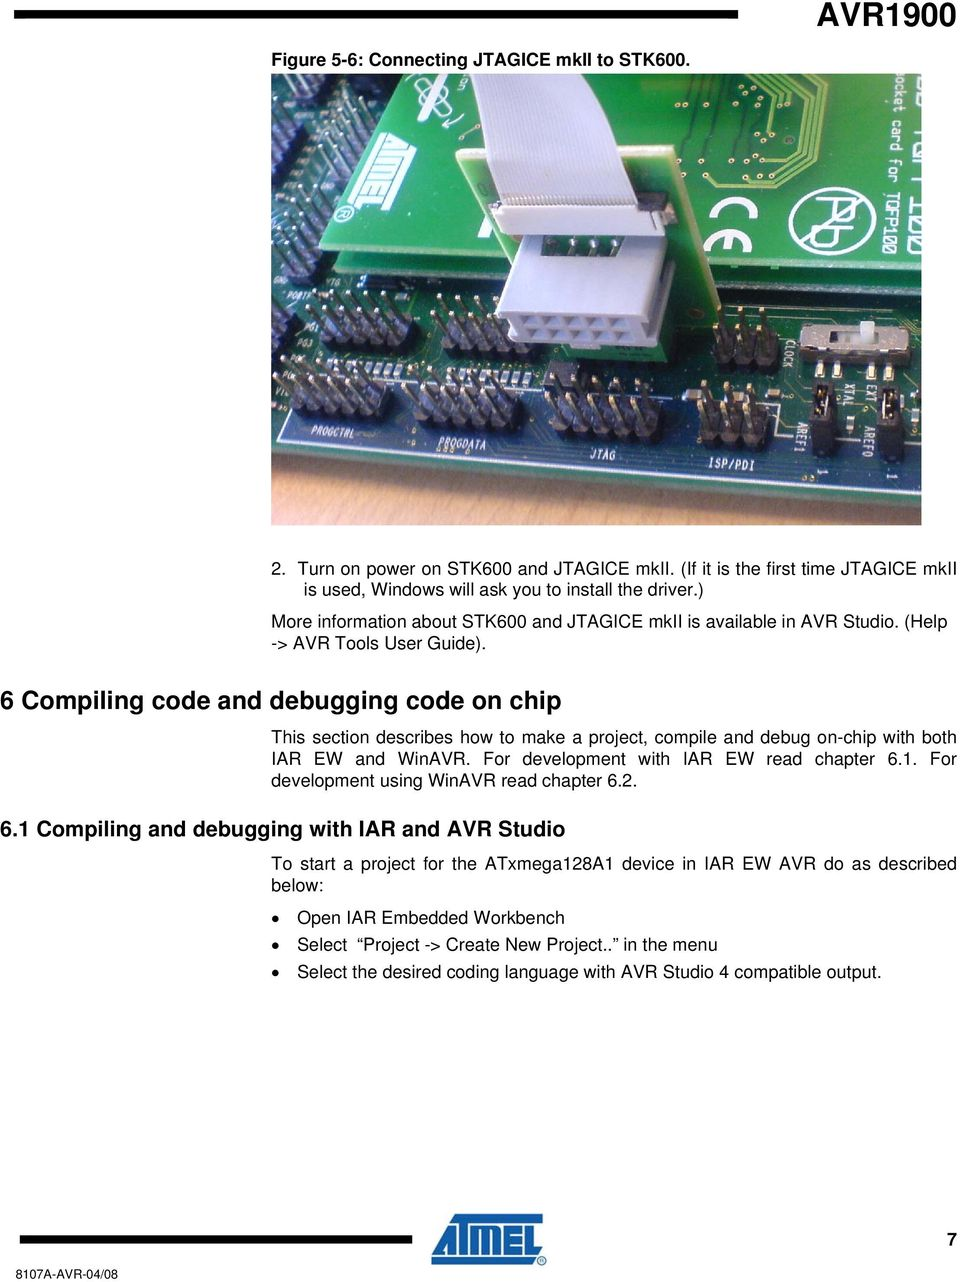 6 Compiling code and debugging code on chip This section describes how to make a project, compile and debug on-chip with both IAR EW and WinAVR. For development with IAR EW read chapter 6.1.